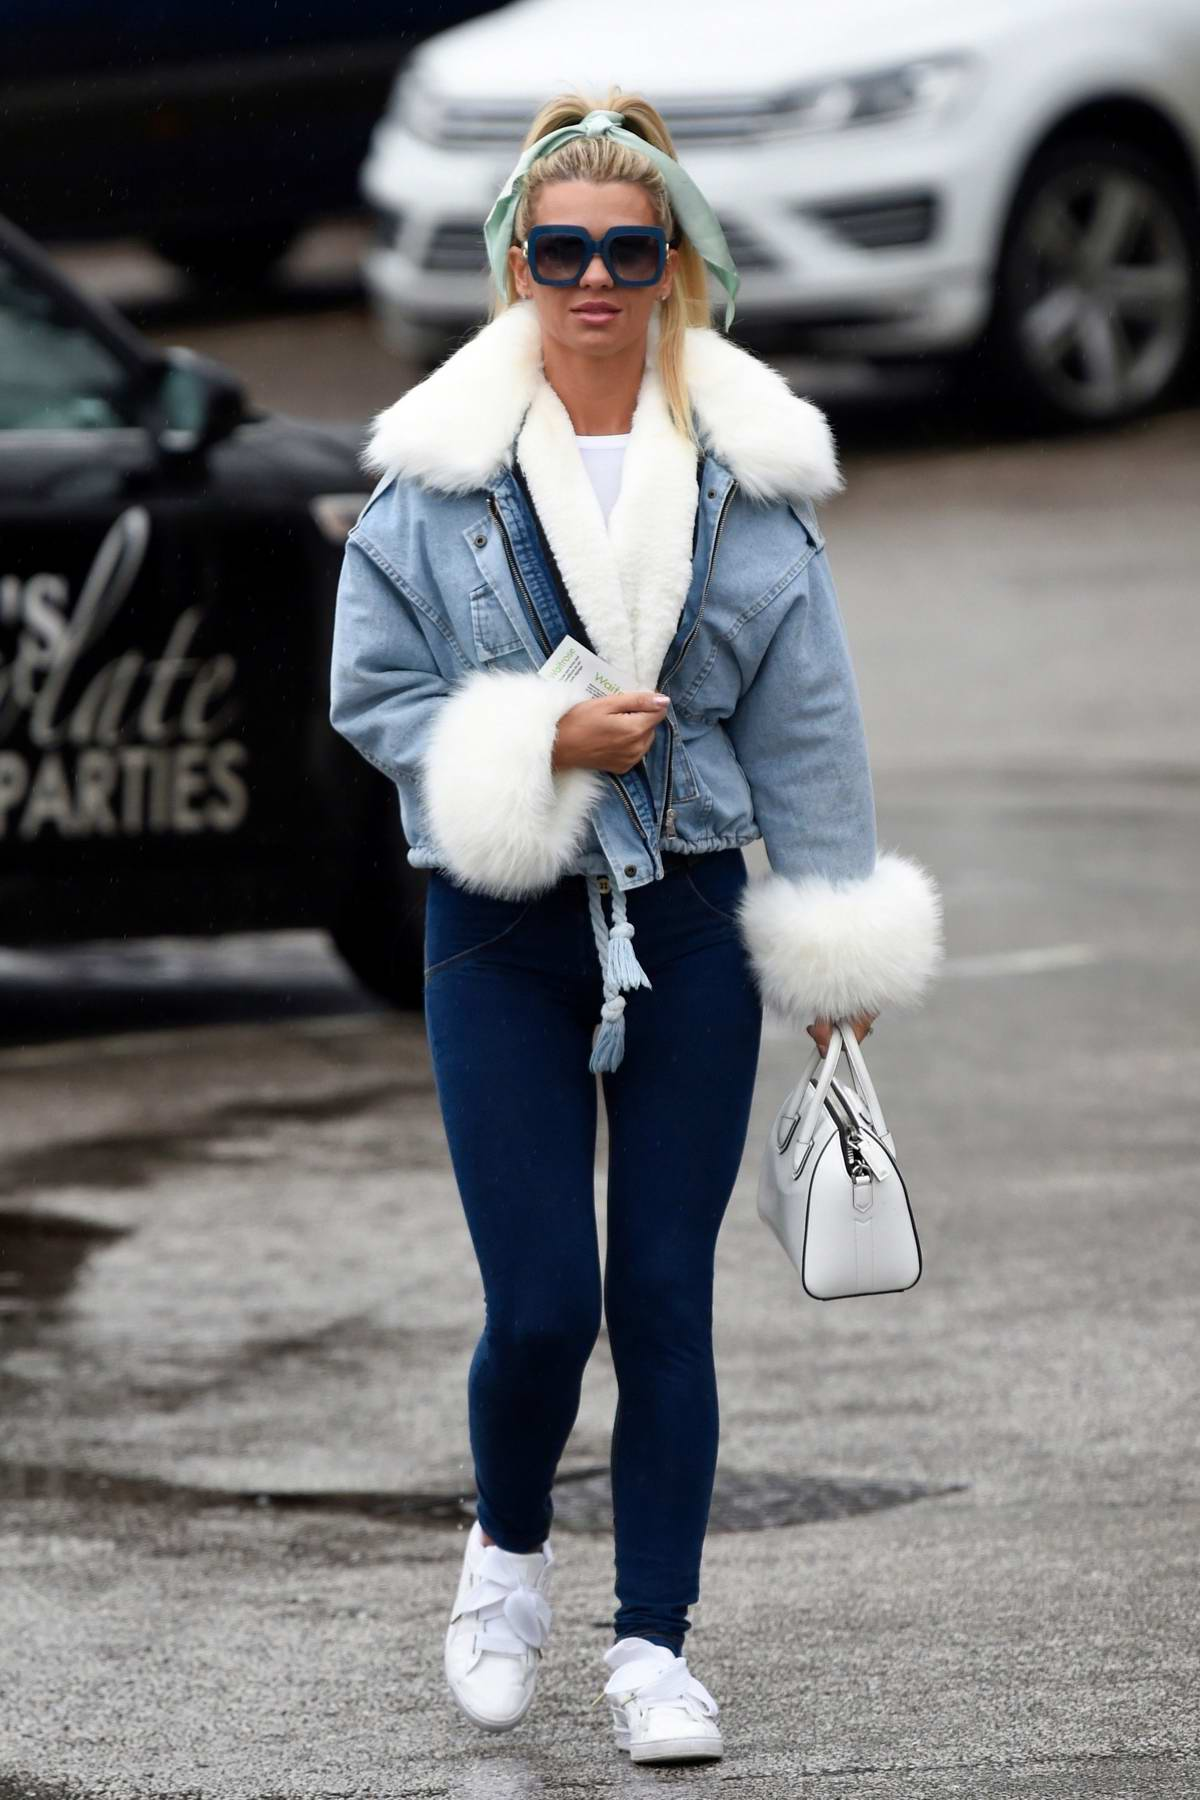 Christine McGuinness seen wearing a fur-lined denim jacket and blue denim leggings as she steps out in Chesire, UK